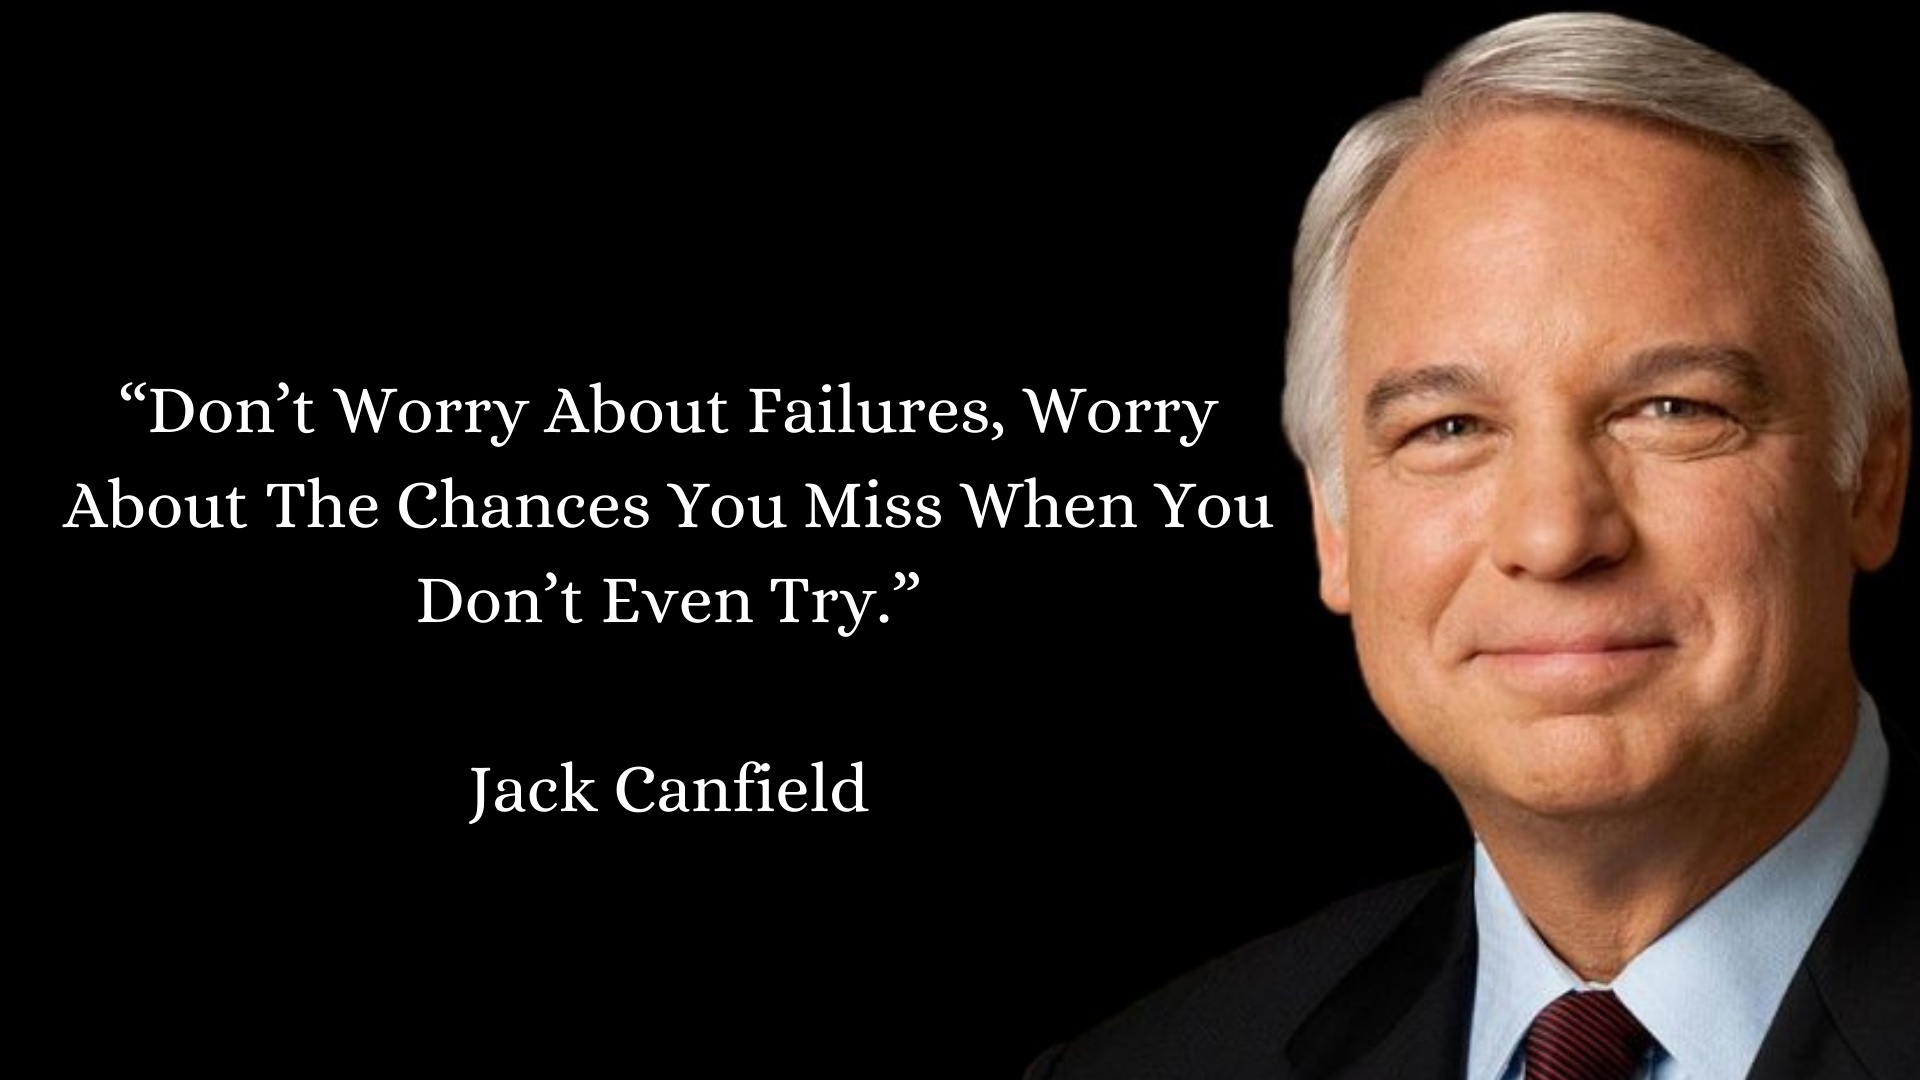 Quote by Jack Canfield